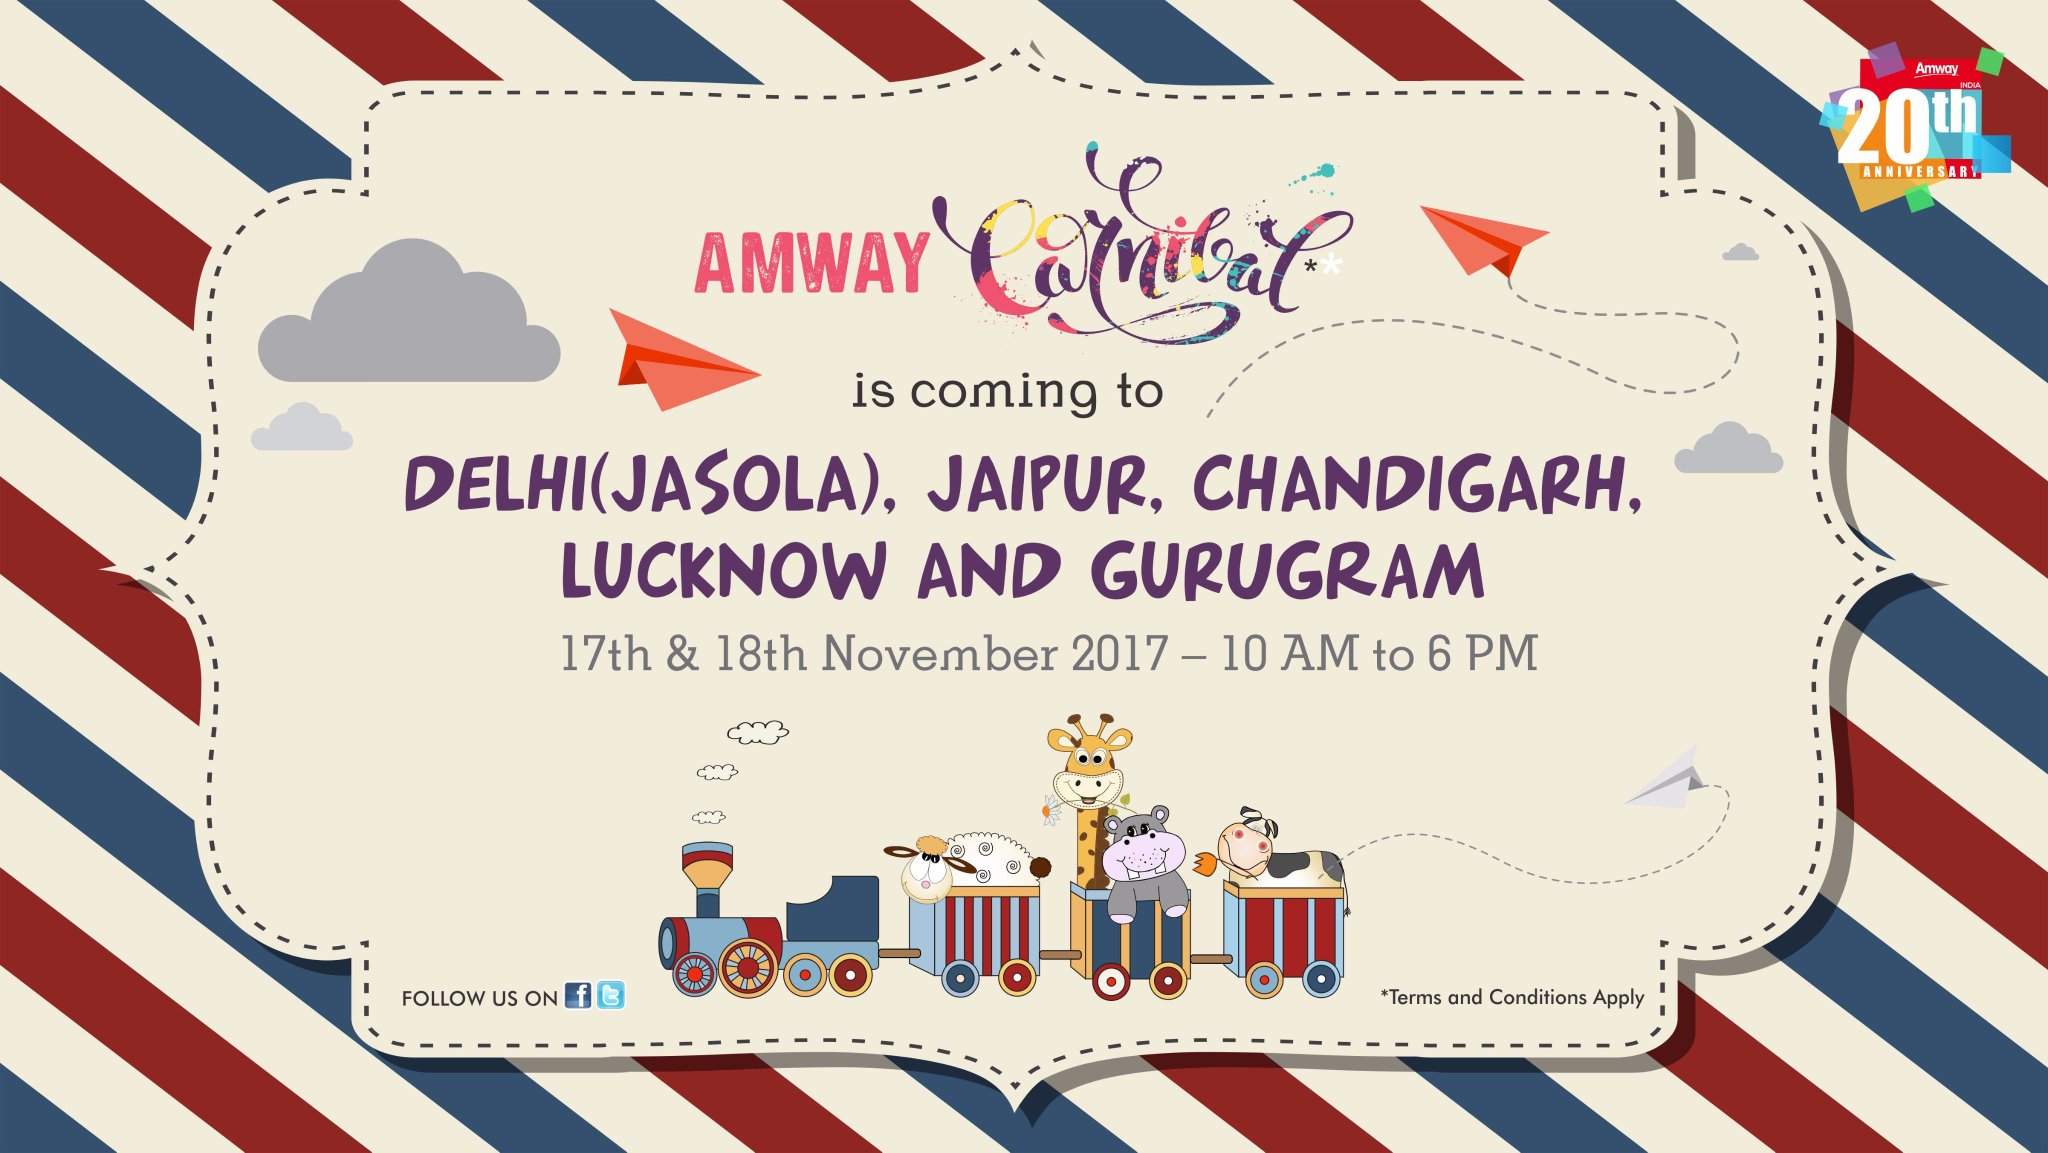 Amway india on twitter two days 9 cities one amwaycarnival amway india on twitter two days 9 cities one amwaycarnival httpstjqpbuoeqir stopboris Choice Image